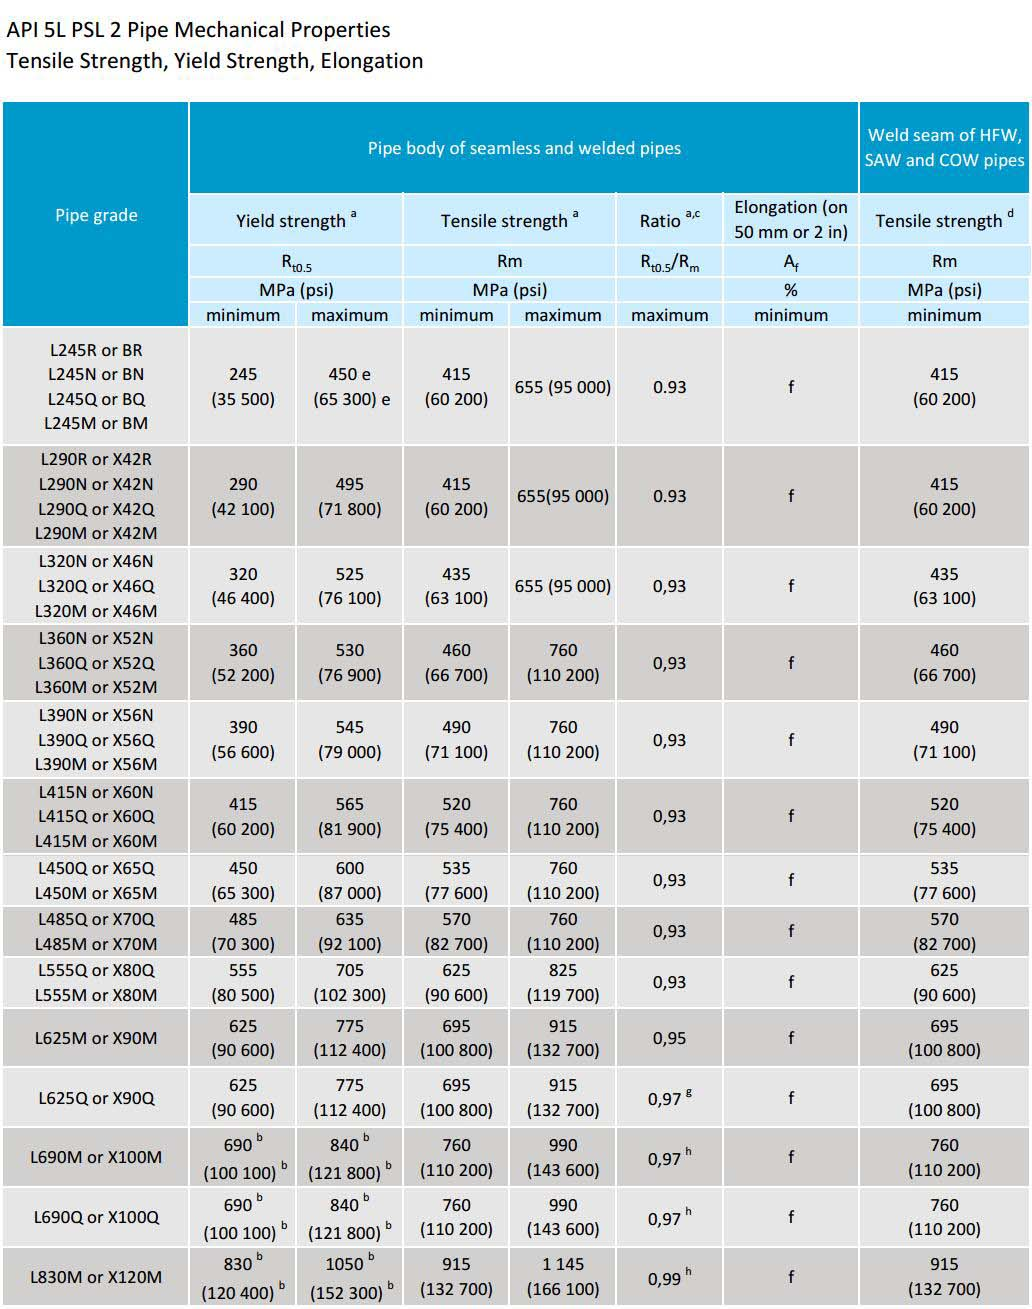 API 5L psl1 pipe chemical composition properties